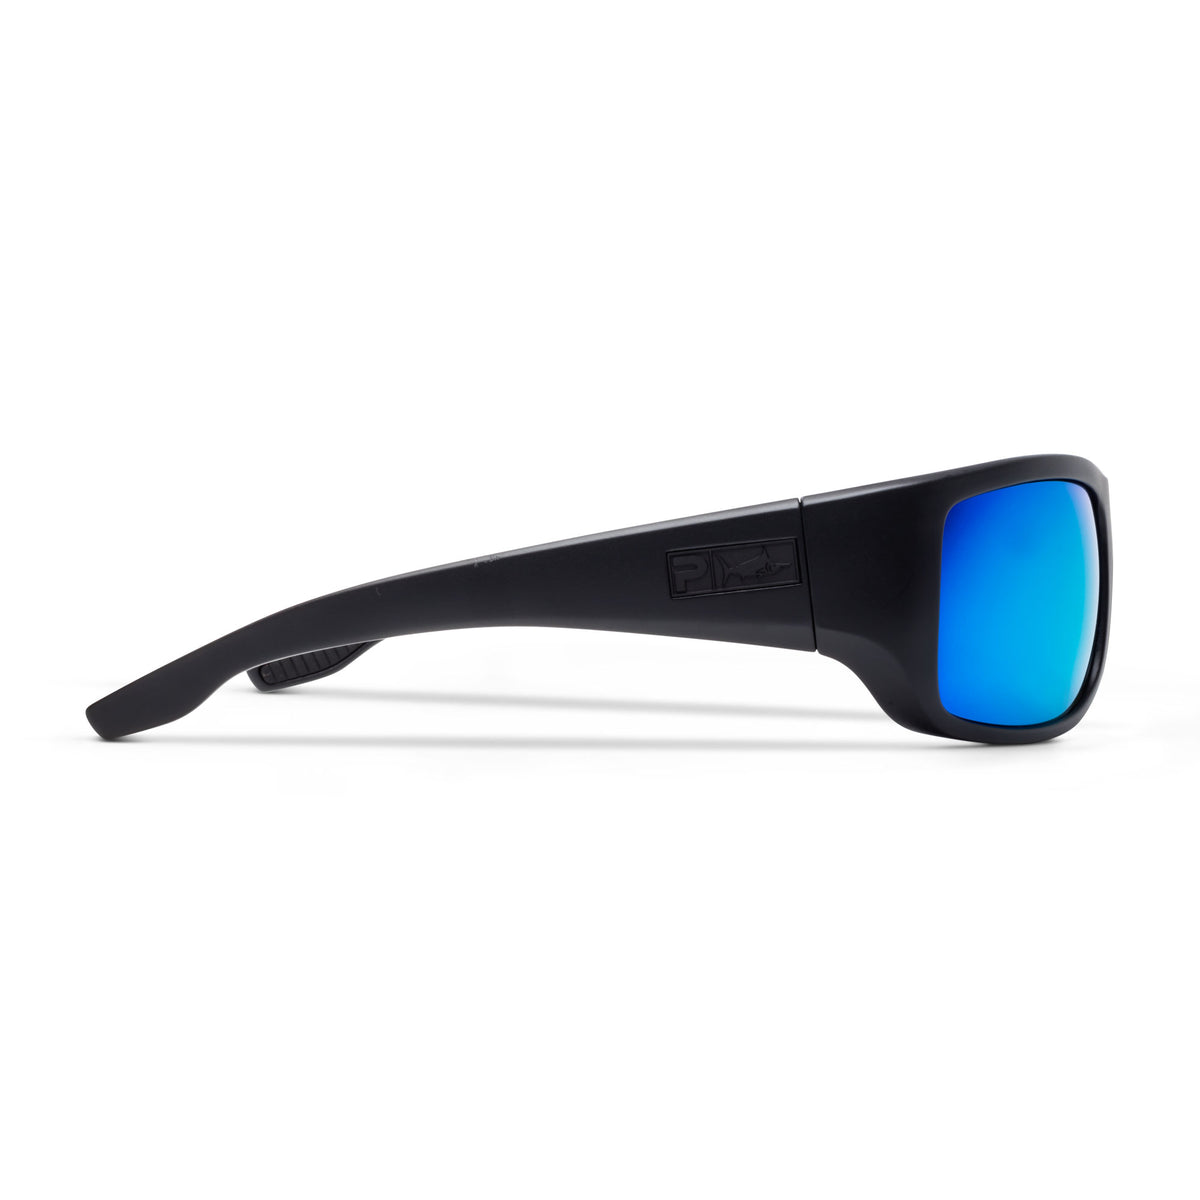 Fish Hook - Polarized XP-700™ Polycarbonate Lens Big Image - 3